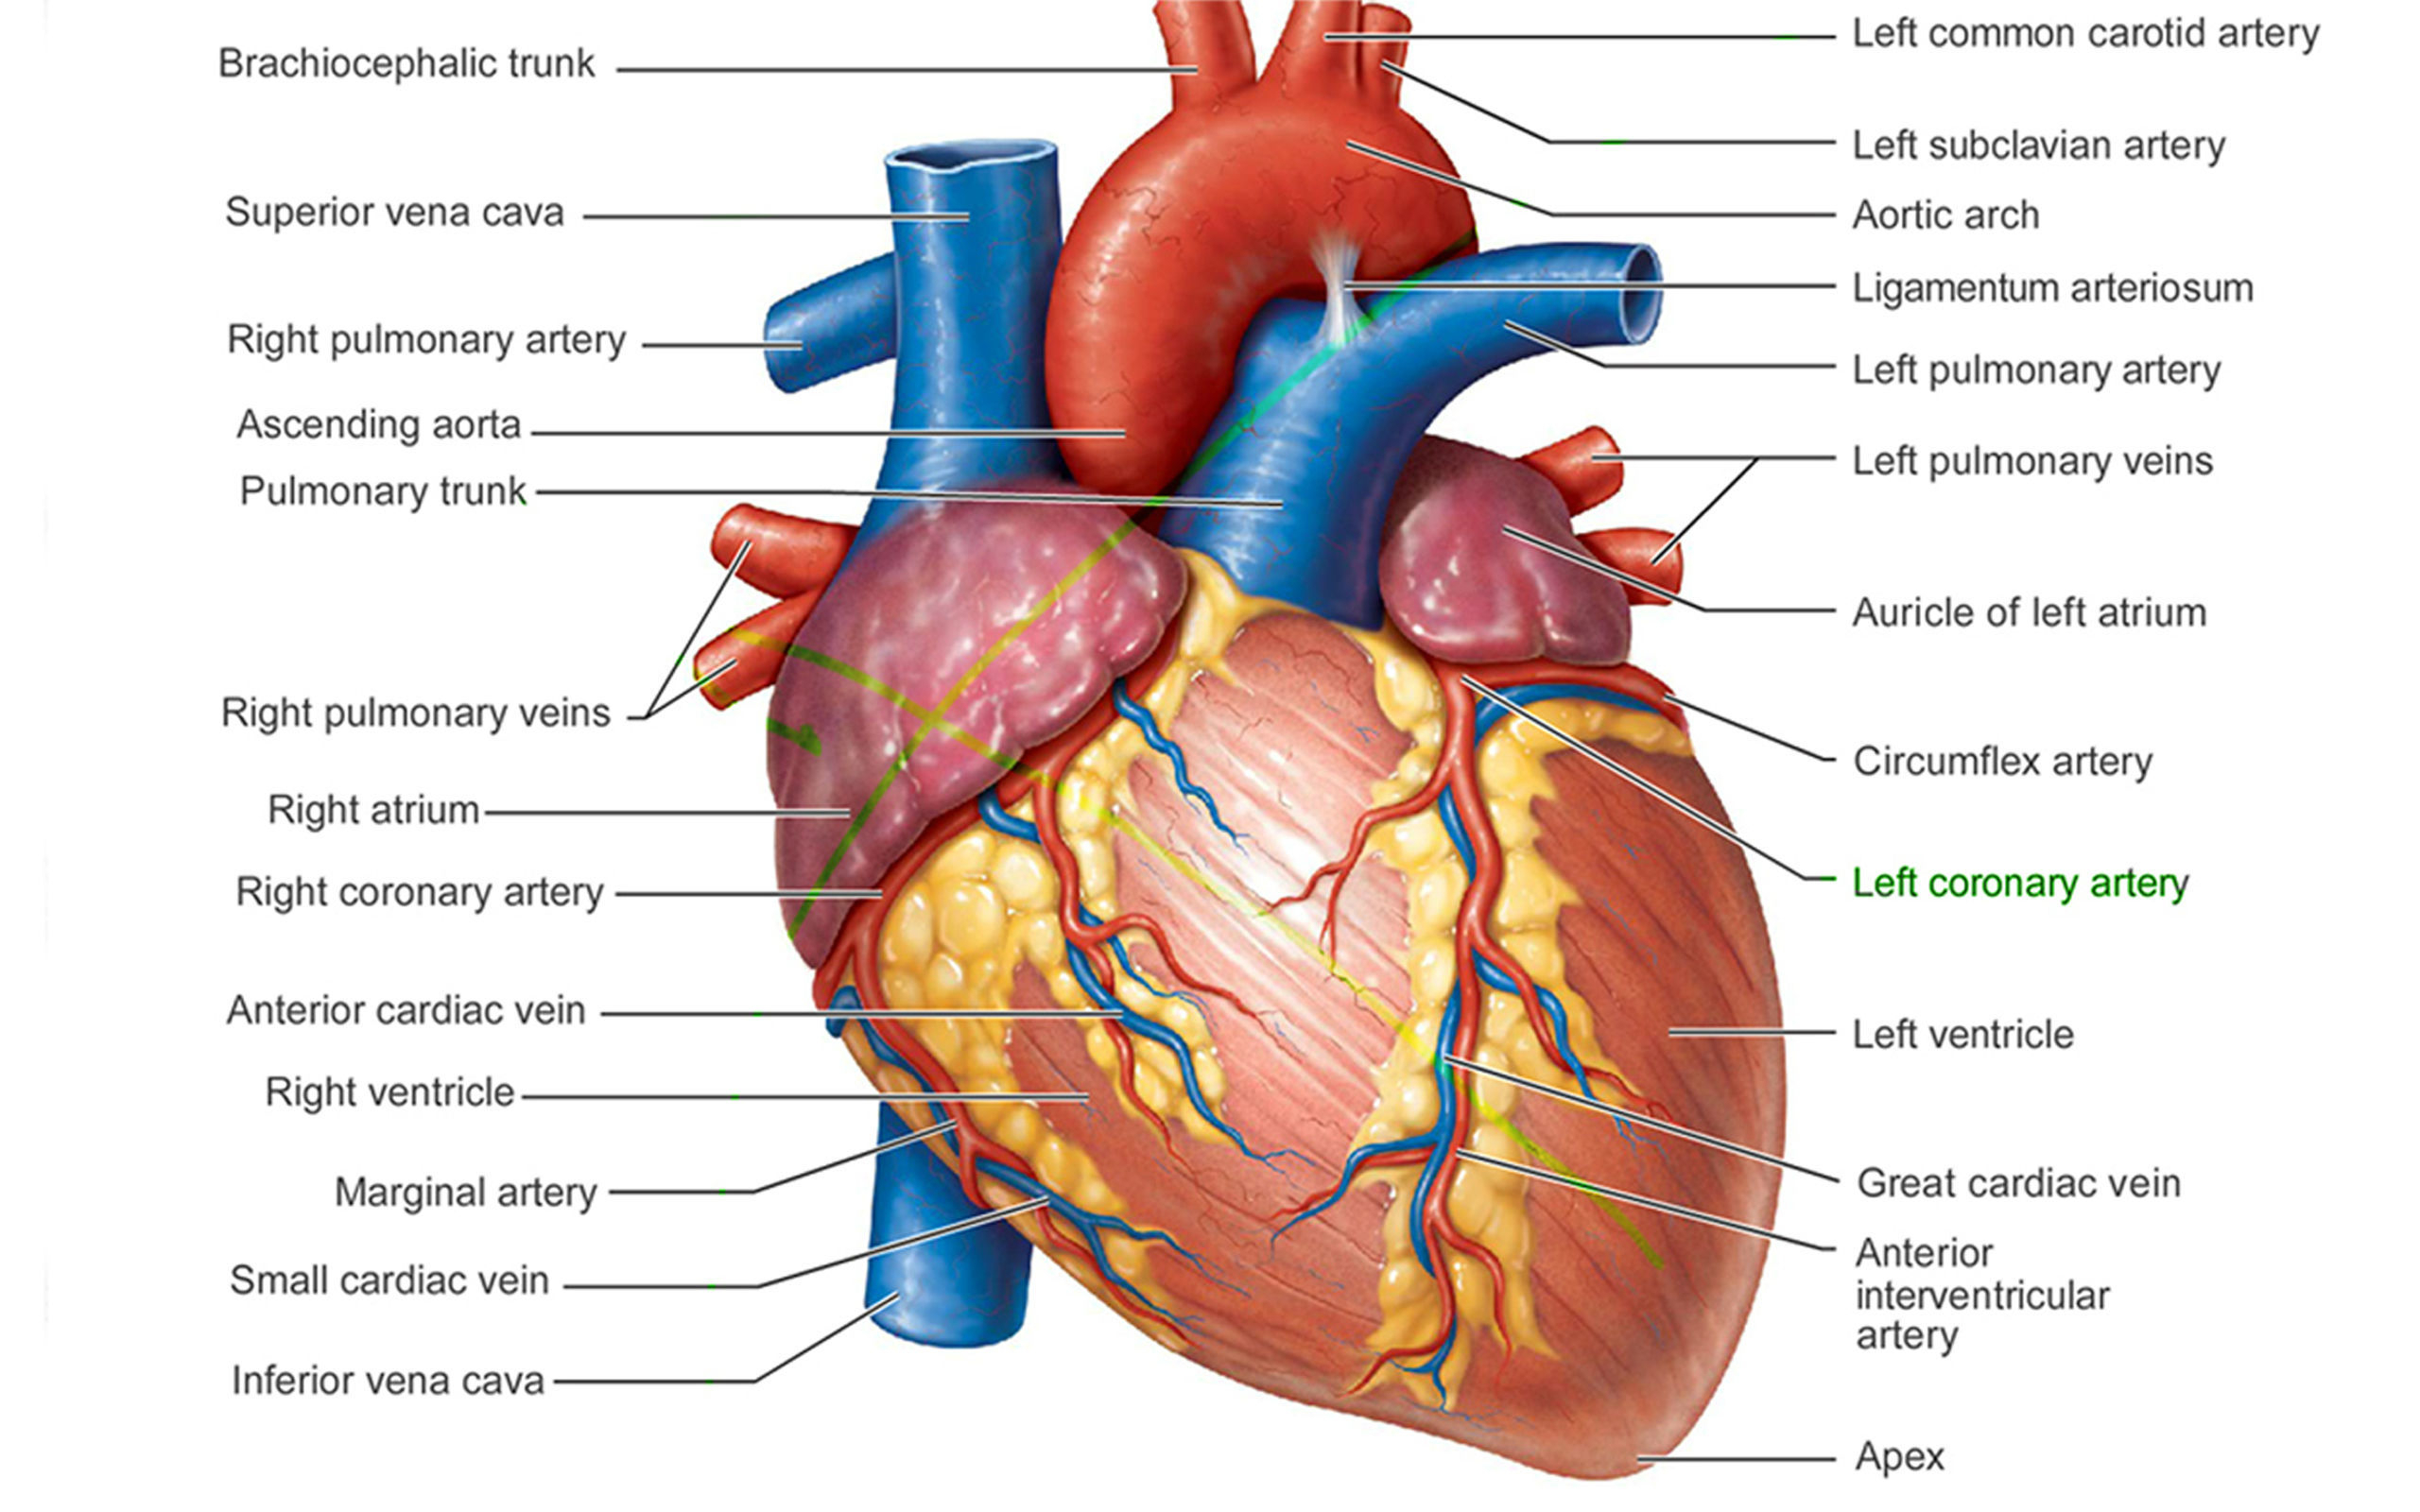 Worksheets The Human Heart Anatomy And Circulation Worksheet heart anatomy drawing at getdrawings com free for personal use 2560x1600 with label the human diagram labeled